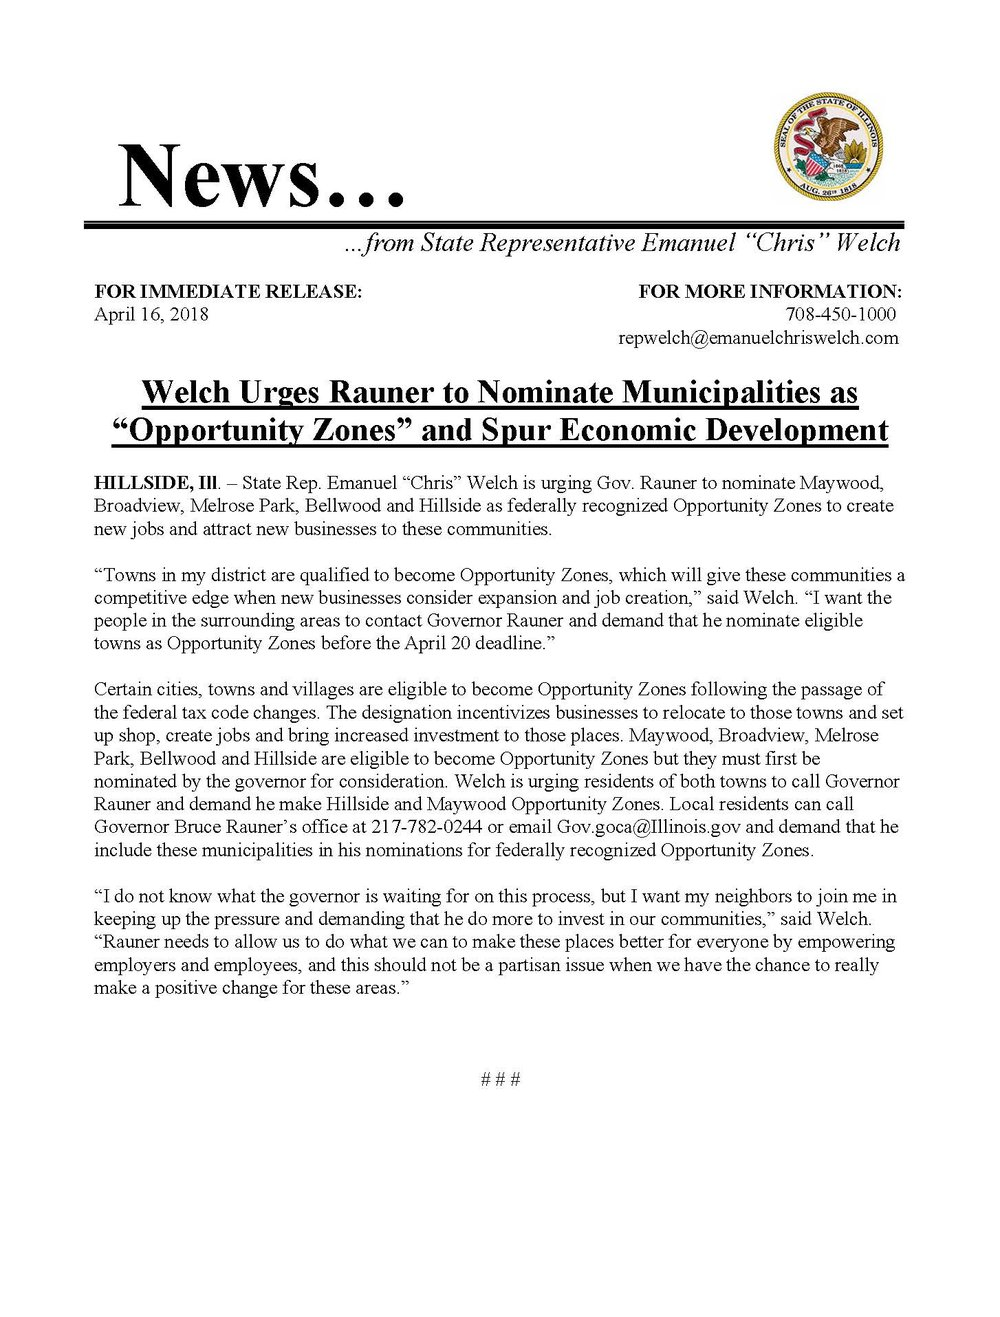 "Welch Urges Rauner to Nominate Municipalities as ""Opportunitiy Zones""  (April 16, 2018)"